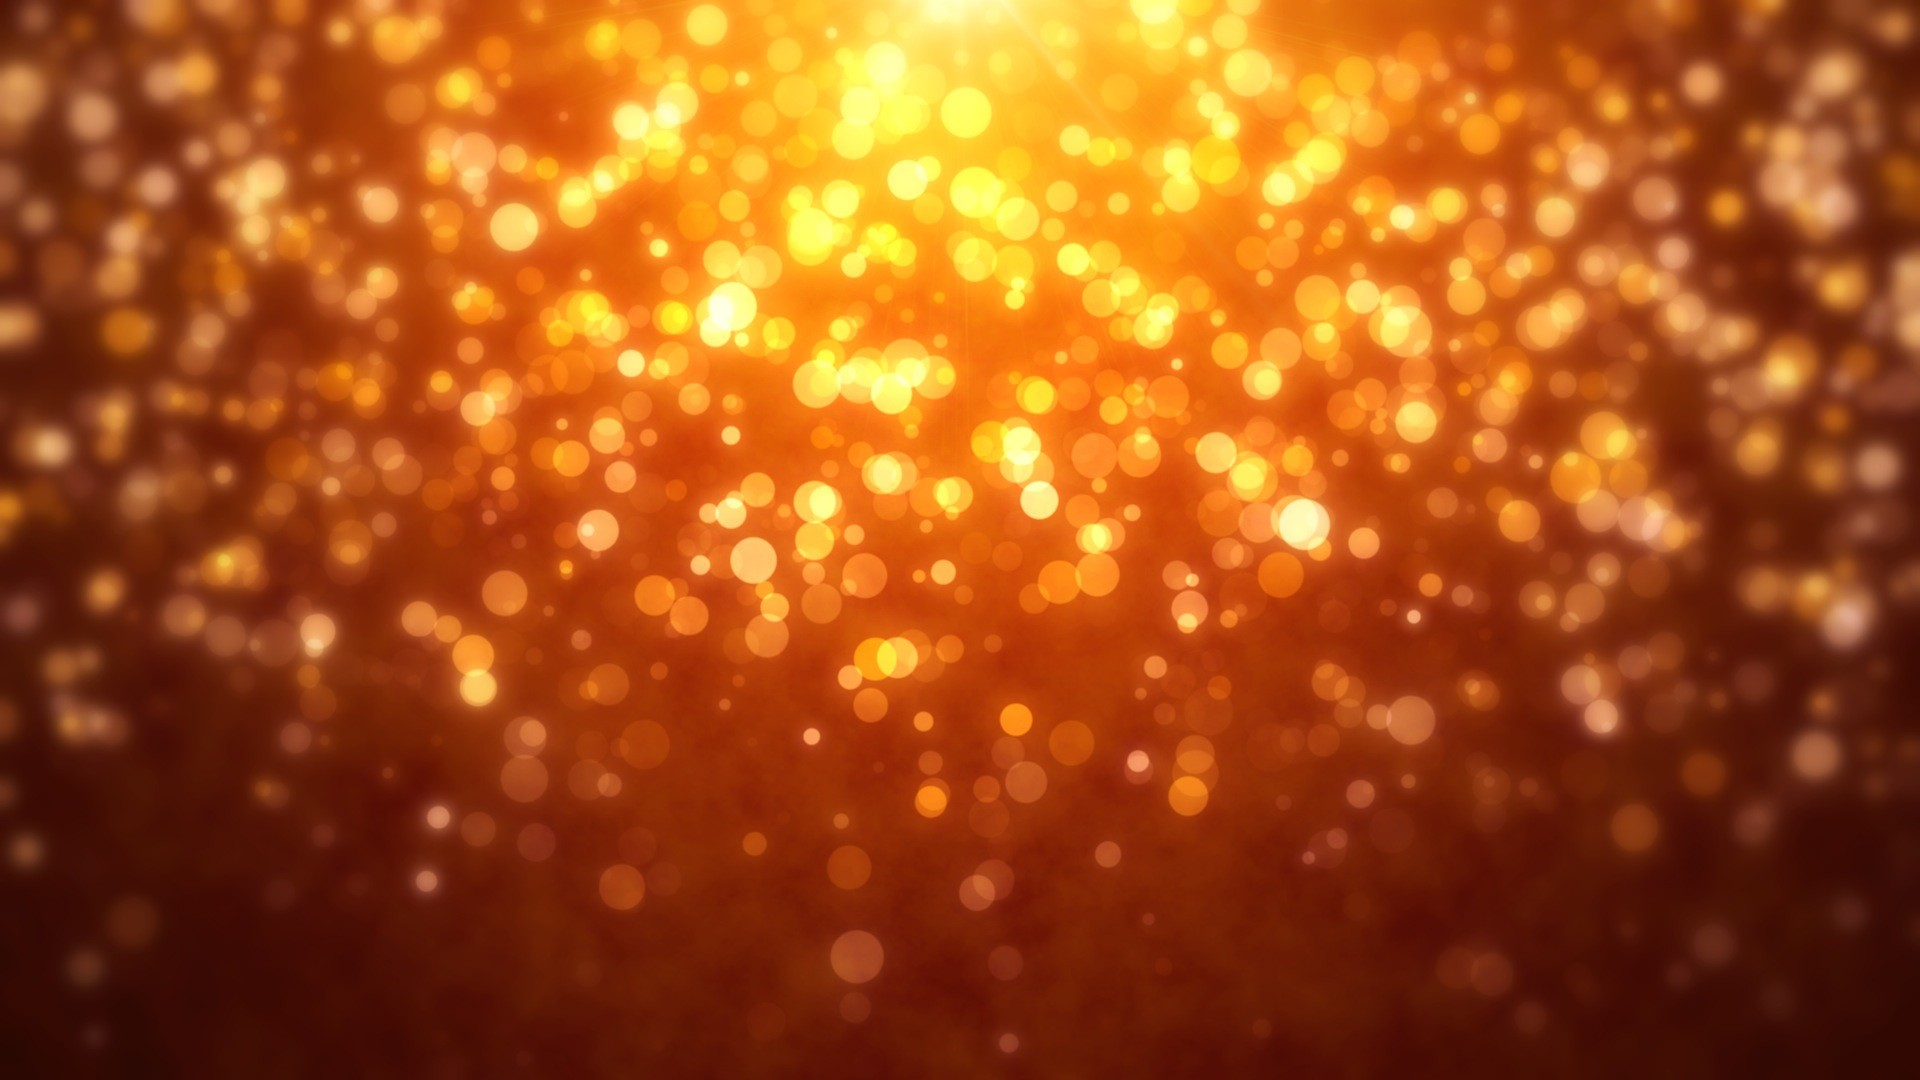 gold glitter wallpaper hd 1080p cool images 4k high definition background  wallpapers smart phones colourful 1080p